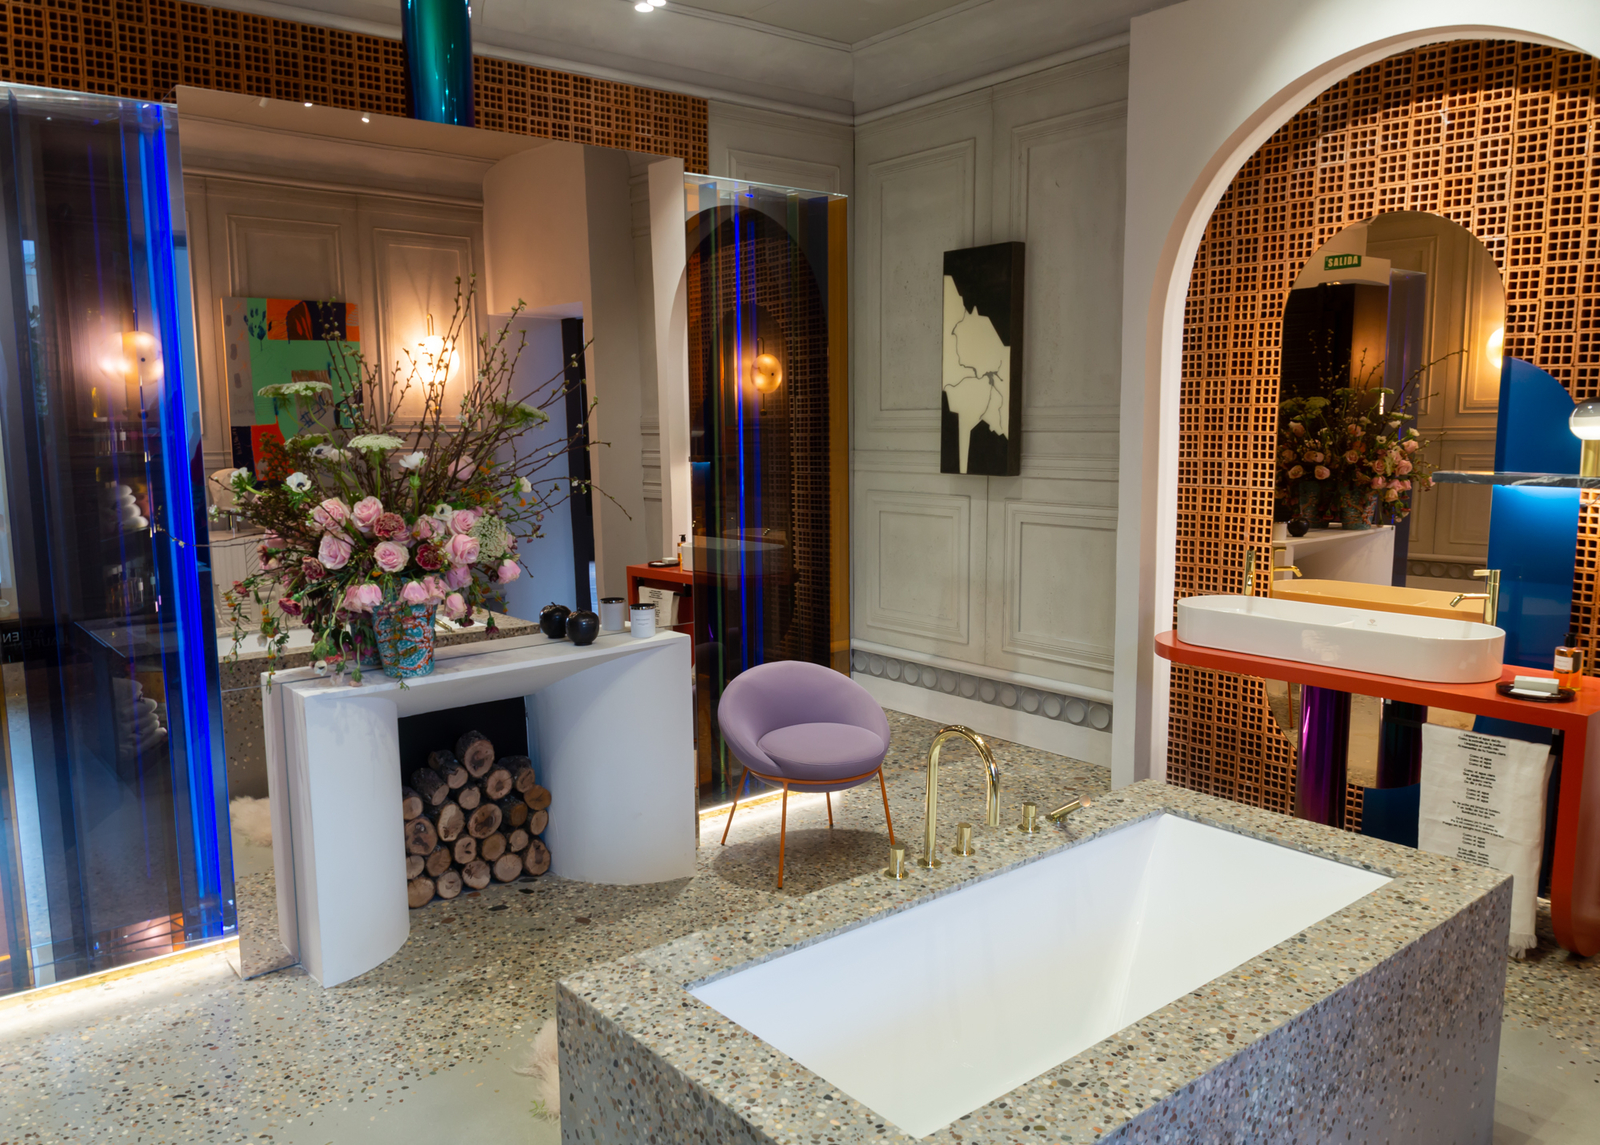 Eclectic bathroom designed by Pepe Leal for Laufen at Casa Decor 2019